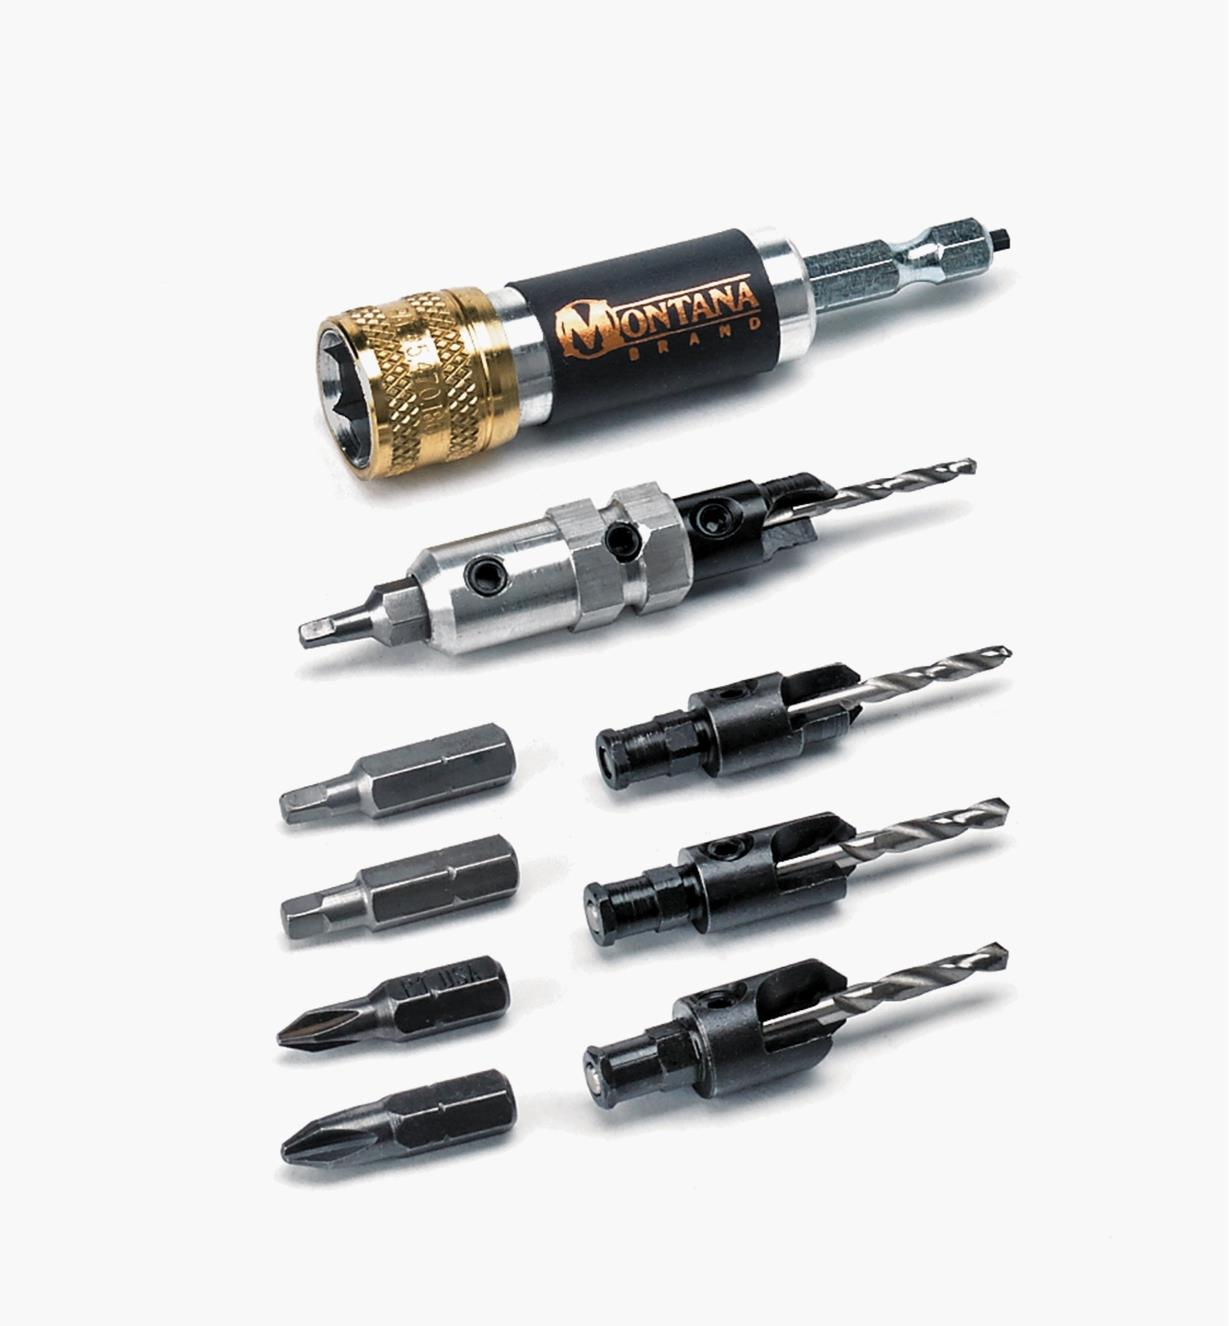 50J0360 - Drill/Countersink Set